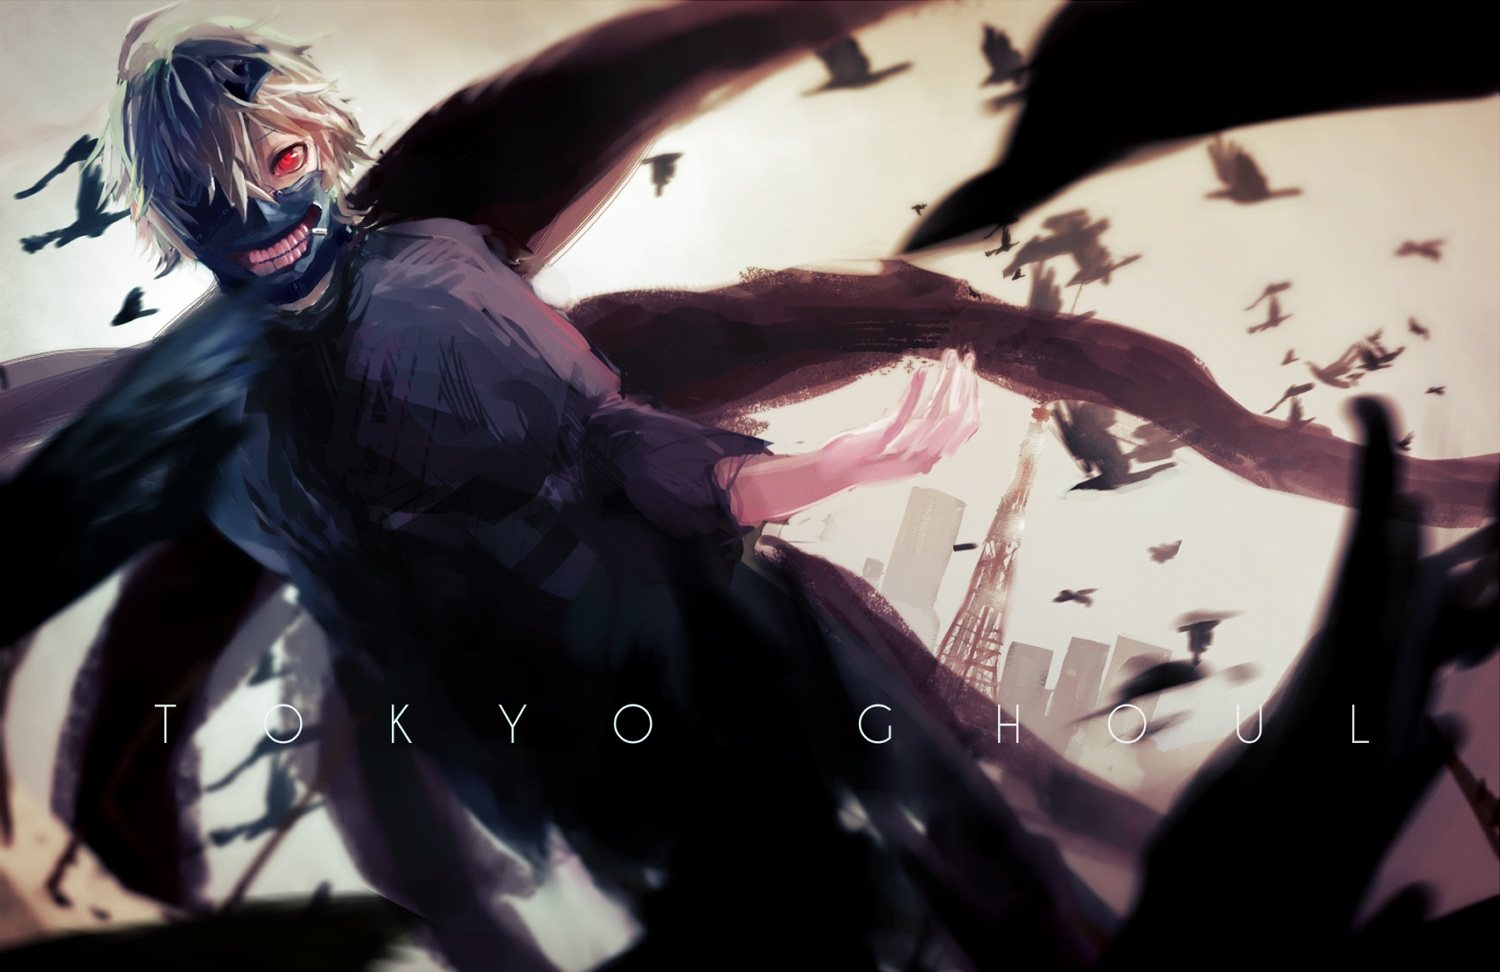 Tokyo Ghoul Images Tokyo Ghoul Hd Wallpaper And Background Photos